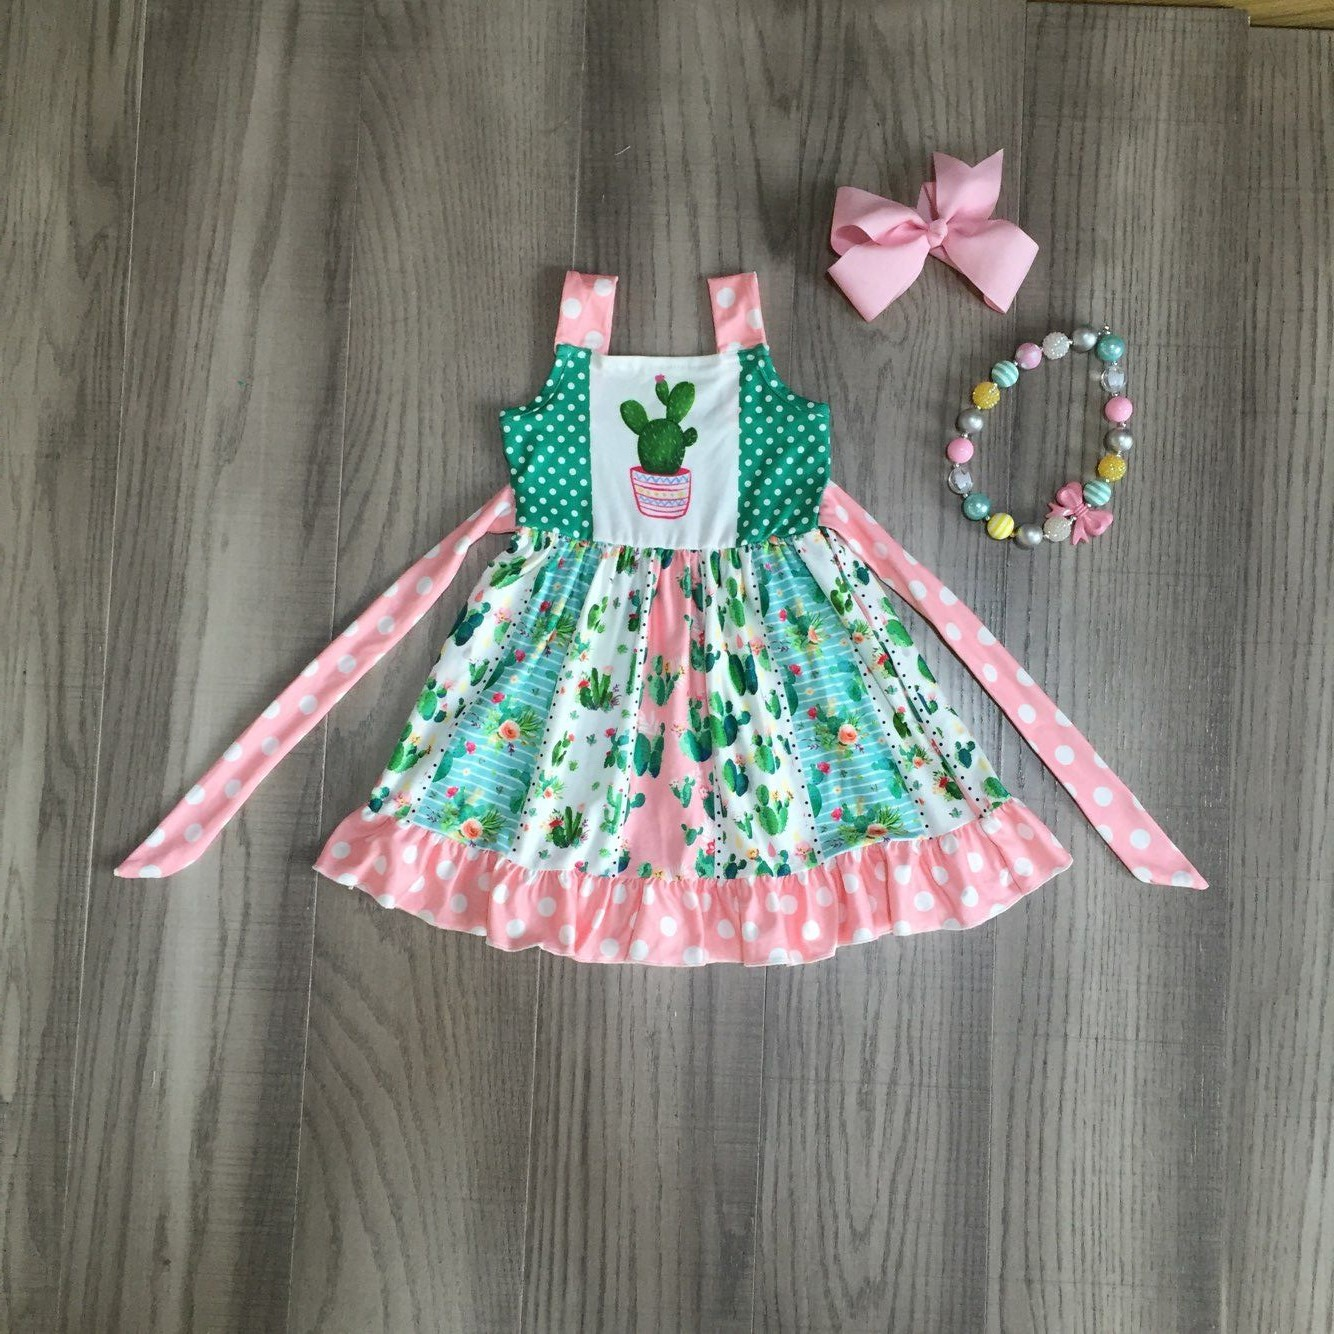 Baby Girls Clothes Girls Summer Twirl Dress Girl Cactus Dress Princess Dress With Accessories